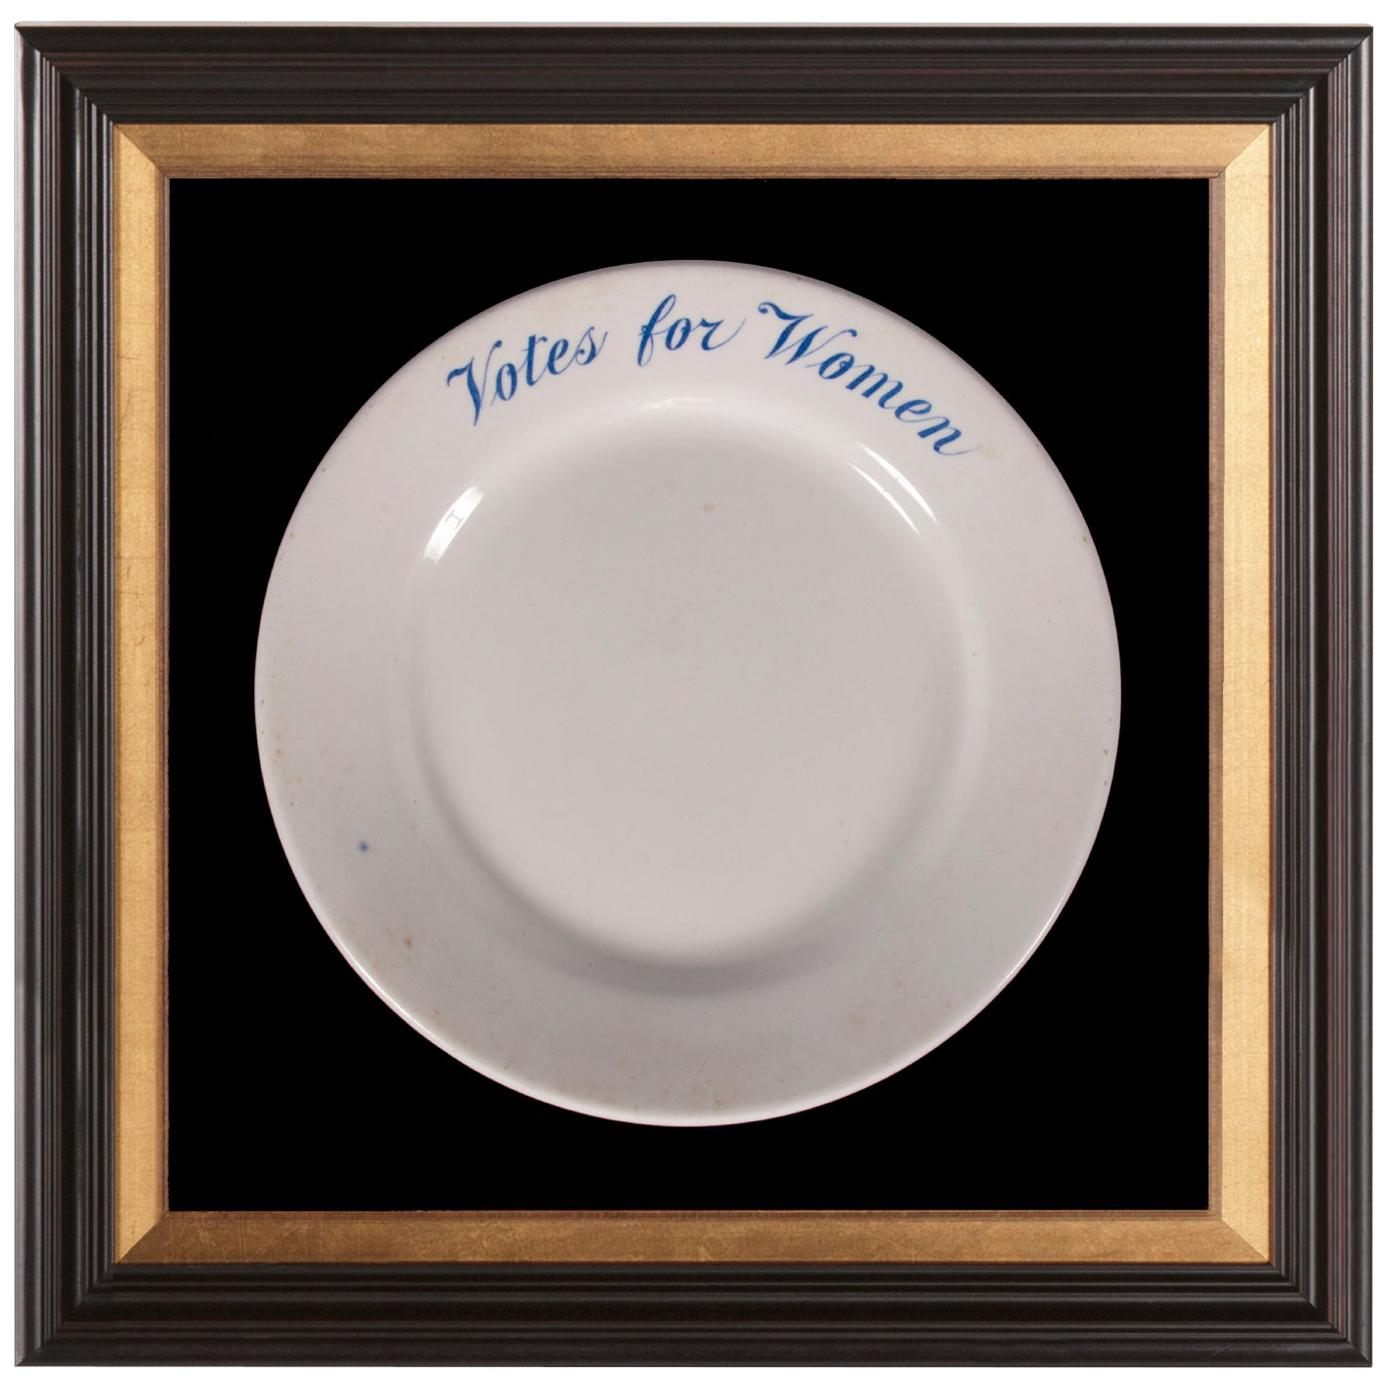 Ironstone Suffragette Plate w/ Votes for Women Text, Made for Alva Belmont, 1914